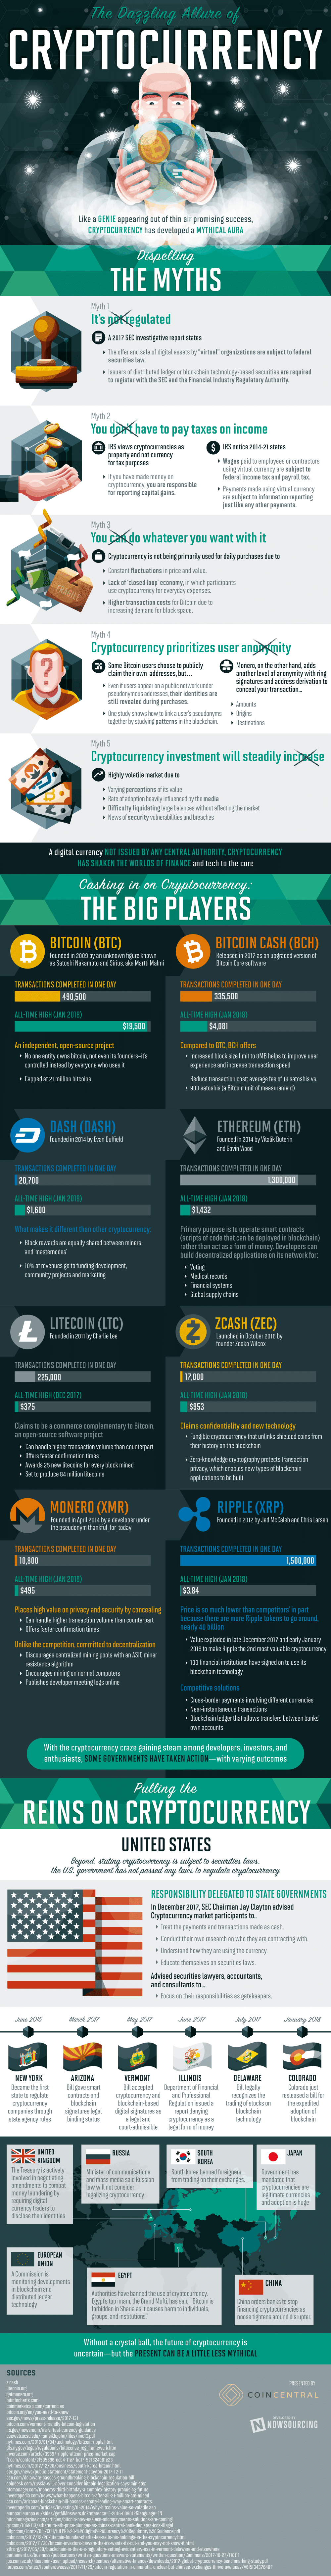 Common Cryptocurrency Myths Debunked [Infographic]